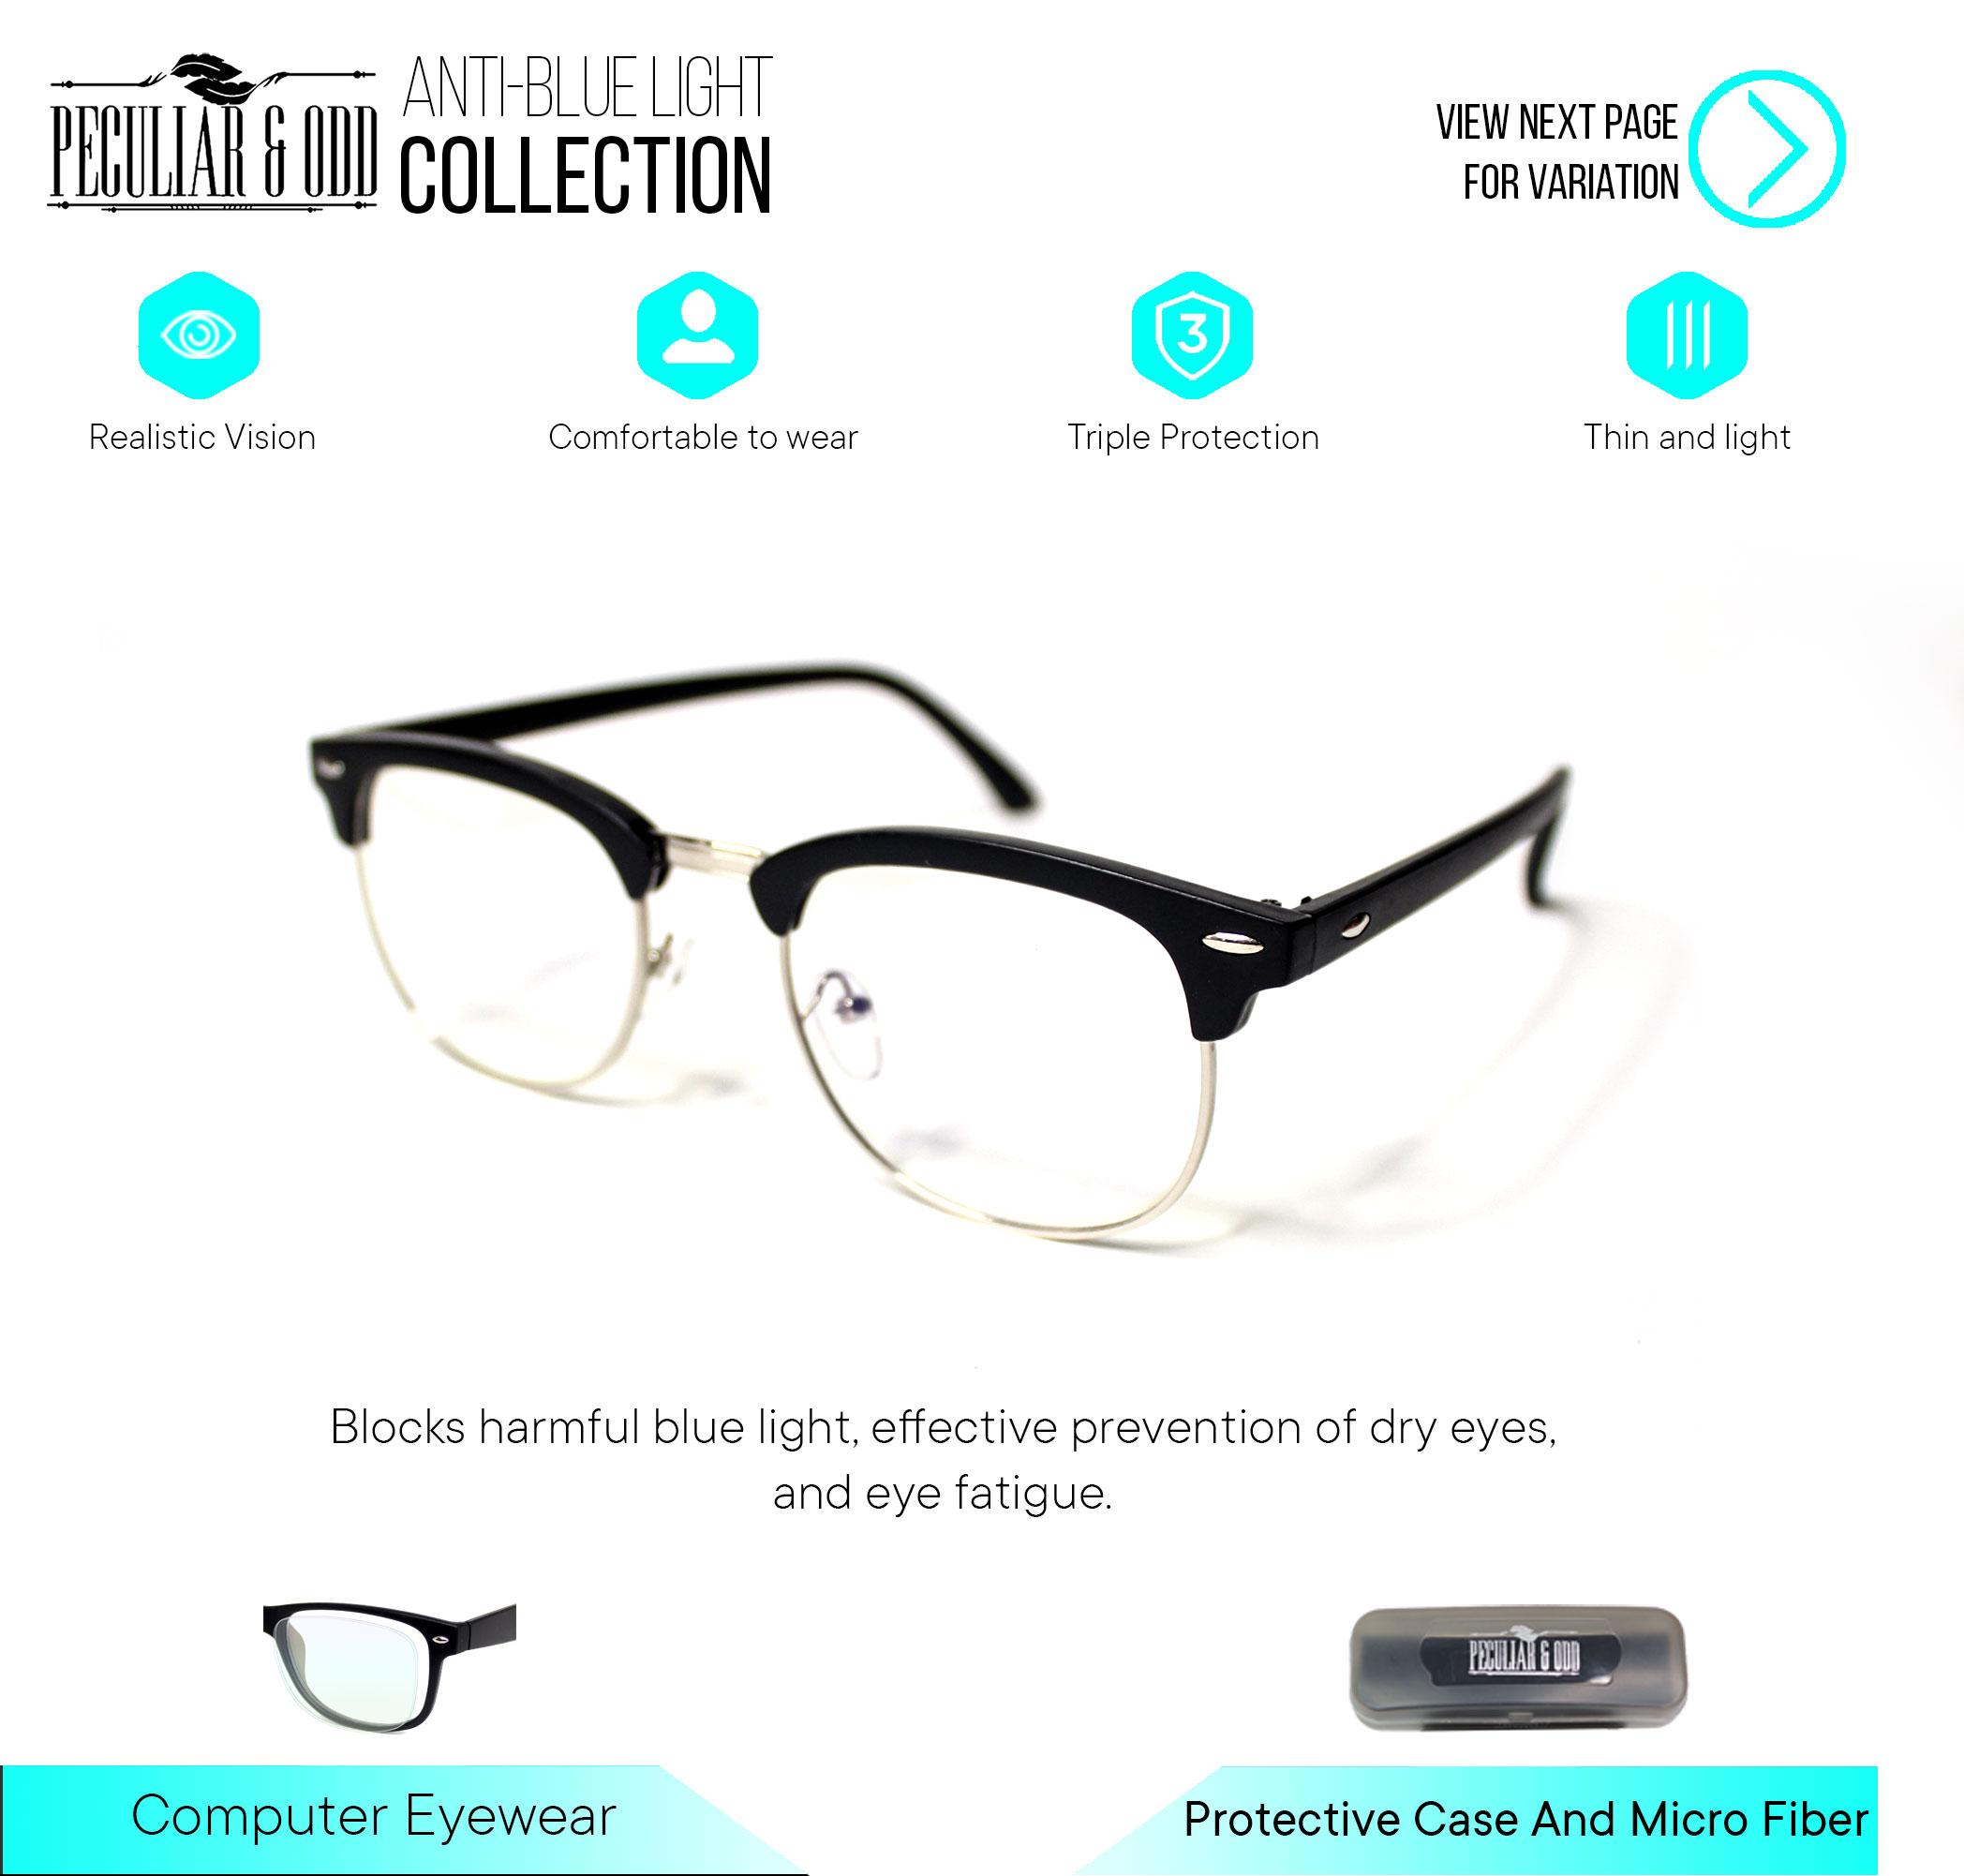 b17eda5dd270 Glasses for sale - Eyewear Online Deals & Prices in Philippines ...